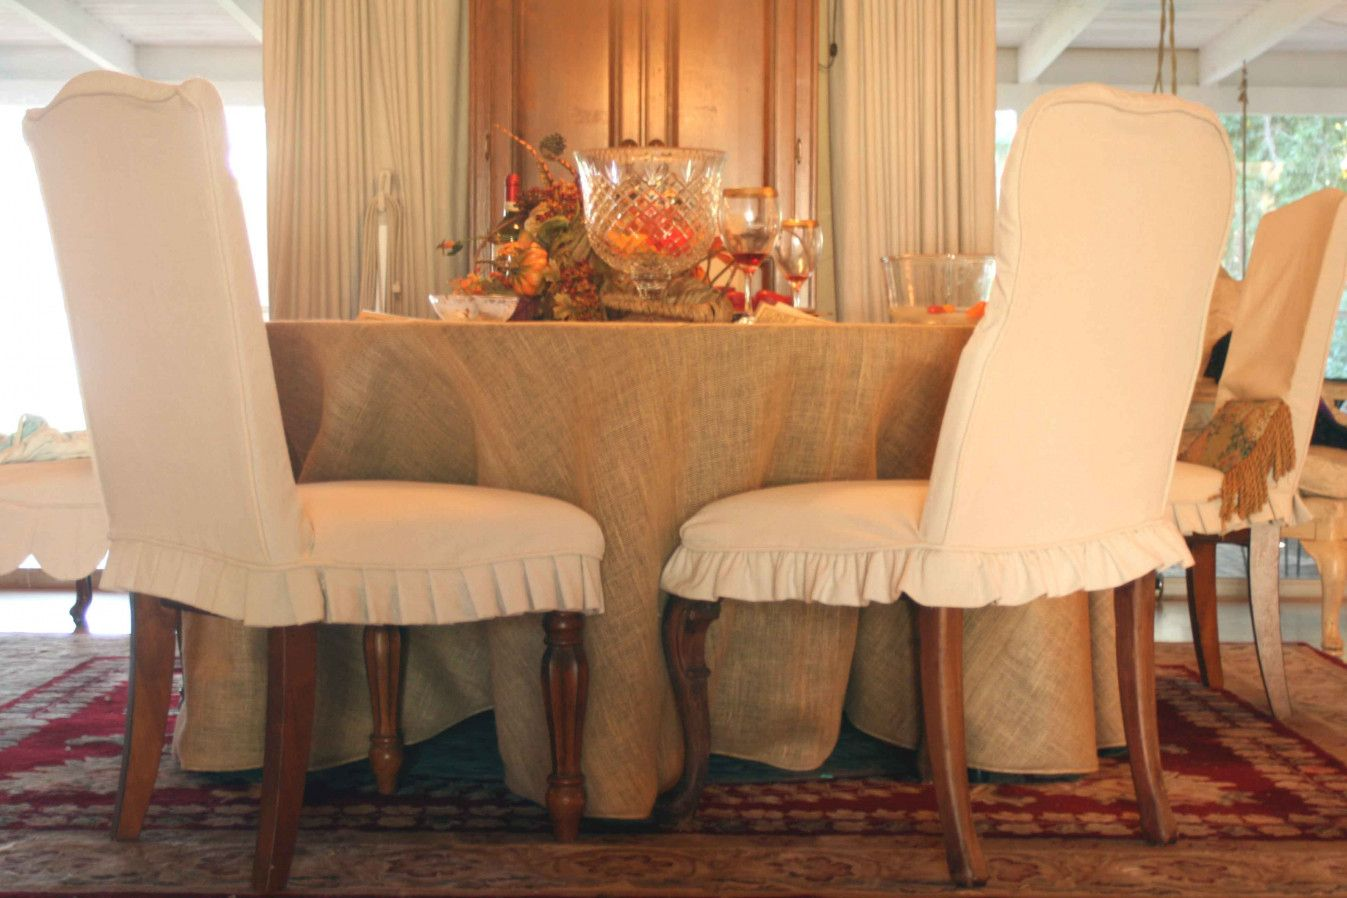 77 Round Back Dining Chair Covers  Modern European Furniture Beauteous Dining Room Chair Covers Round Back Decorating Design